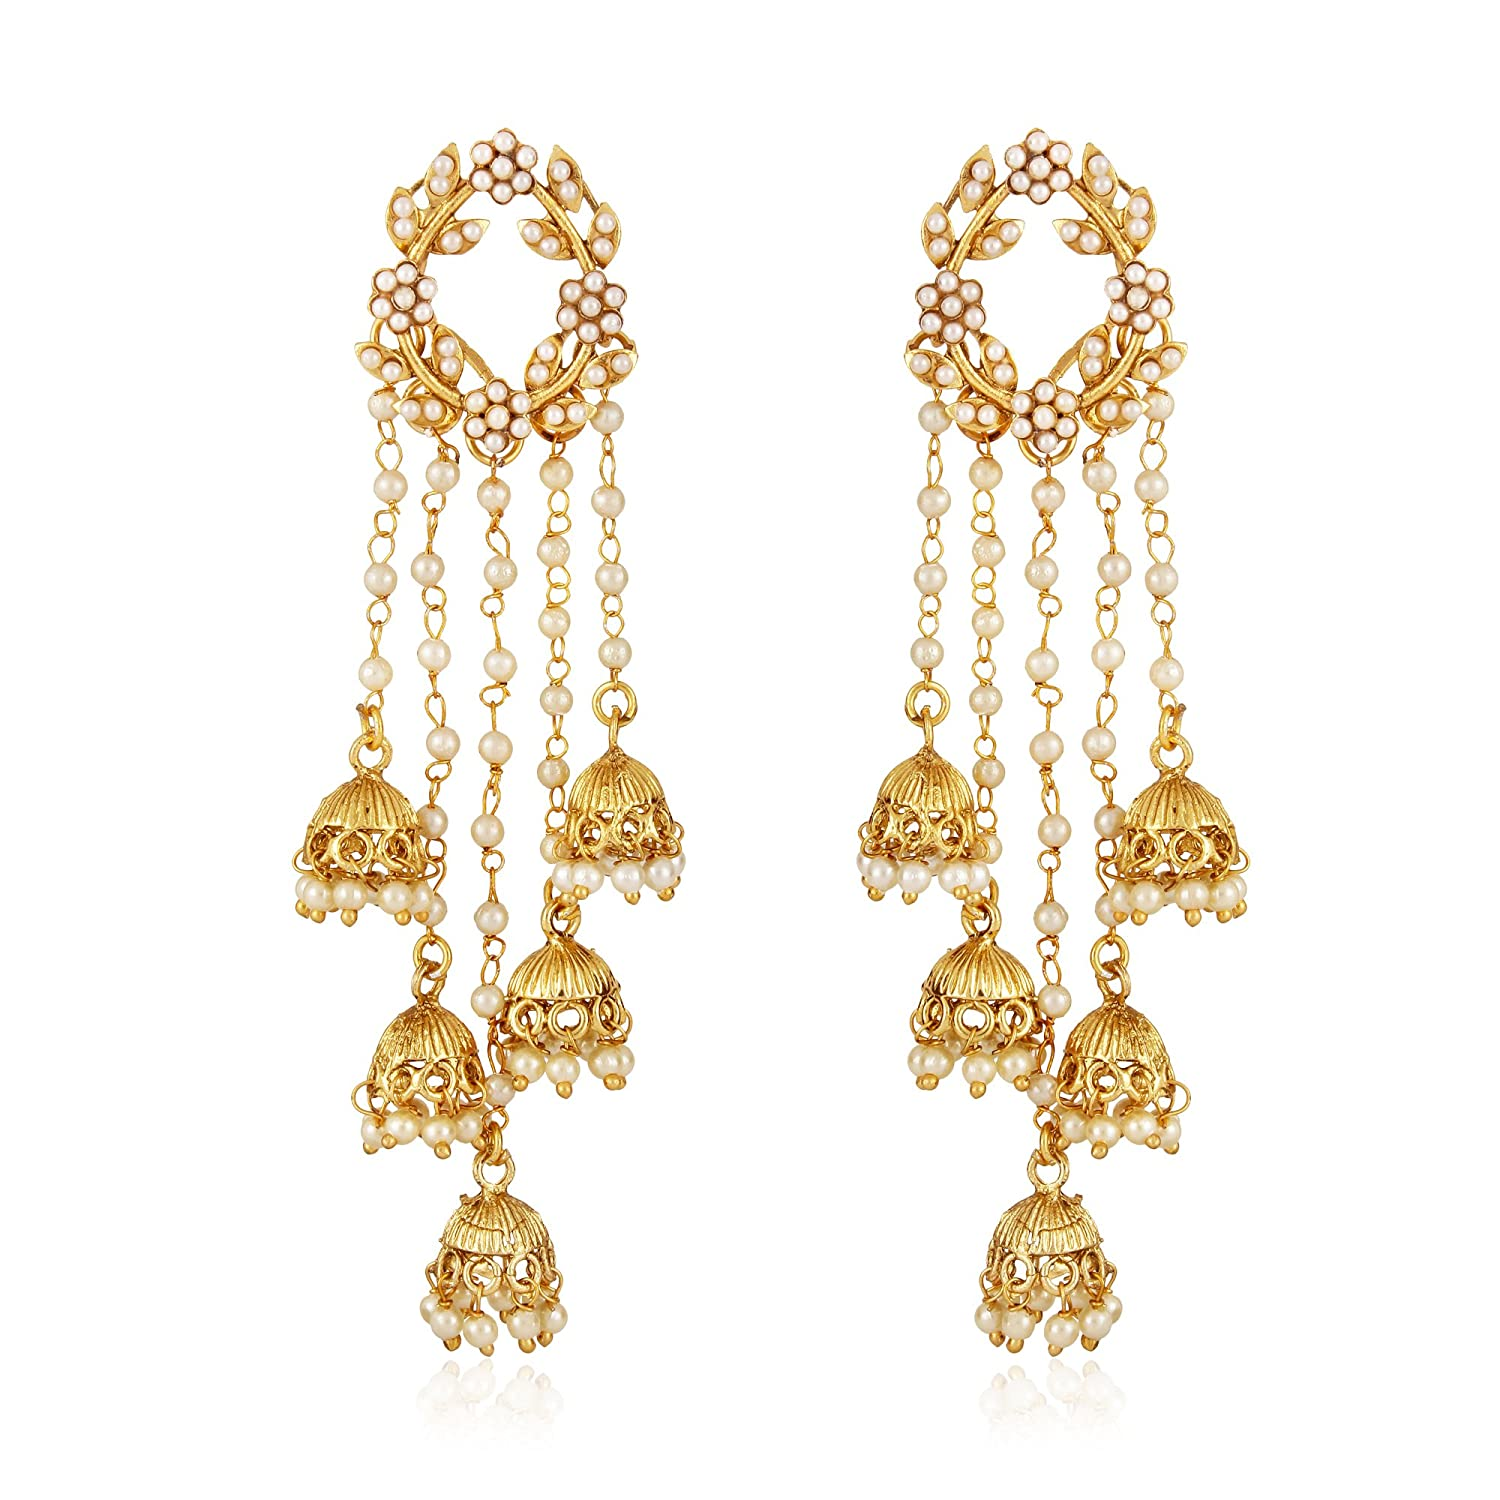 fashion daily traditional amazon stylish earrings in prices buy online b gold india best jhumka jewellery wear fancy shining for pearl diva at party plated jhumki